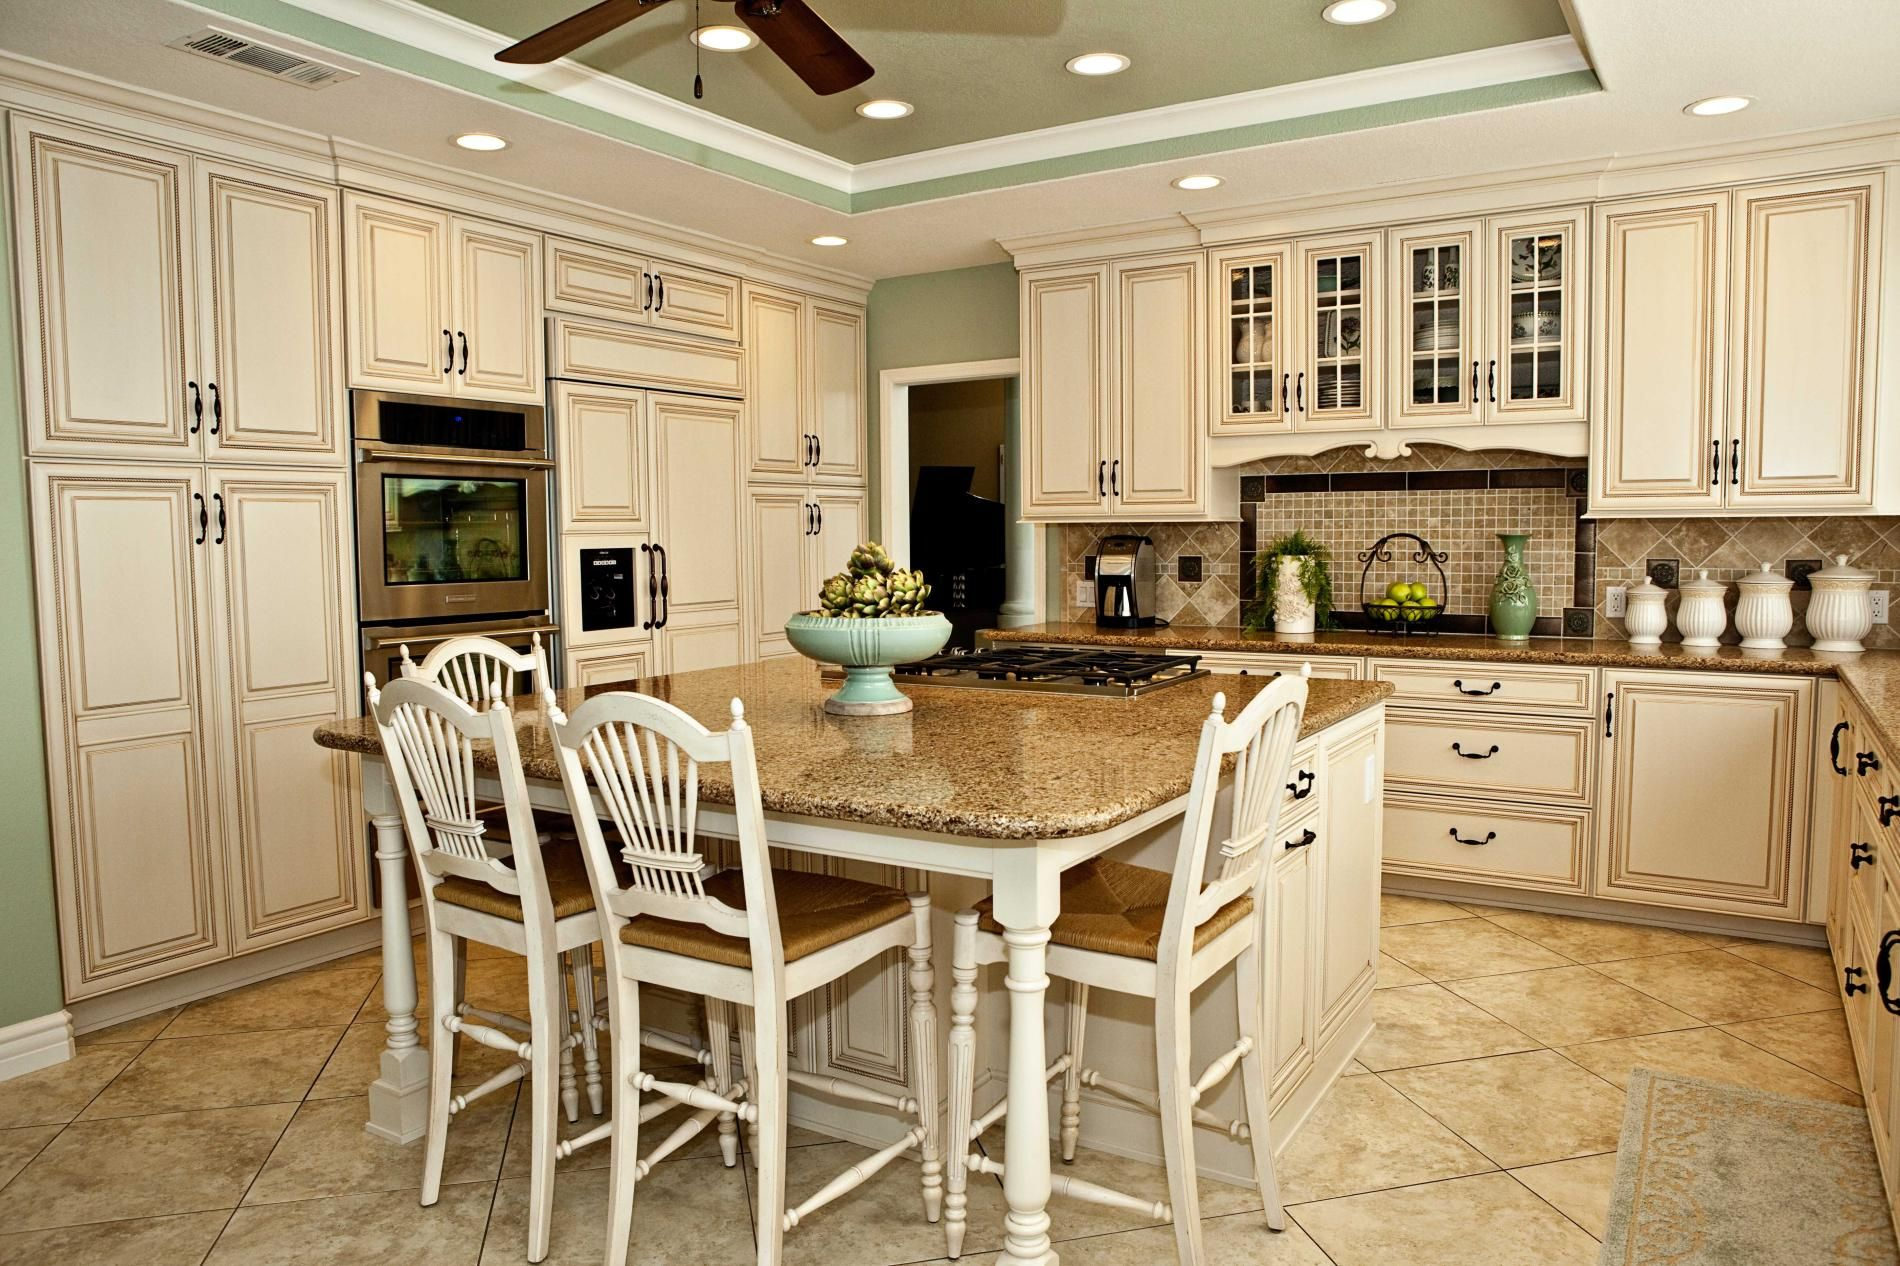 Home Decorations Modern Kitchen Tiles Remodeling Ideas For Kitchens Kitchen Costs For Renovation Kitchen Remodeling Orange County From Kitchen Remodels Designs